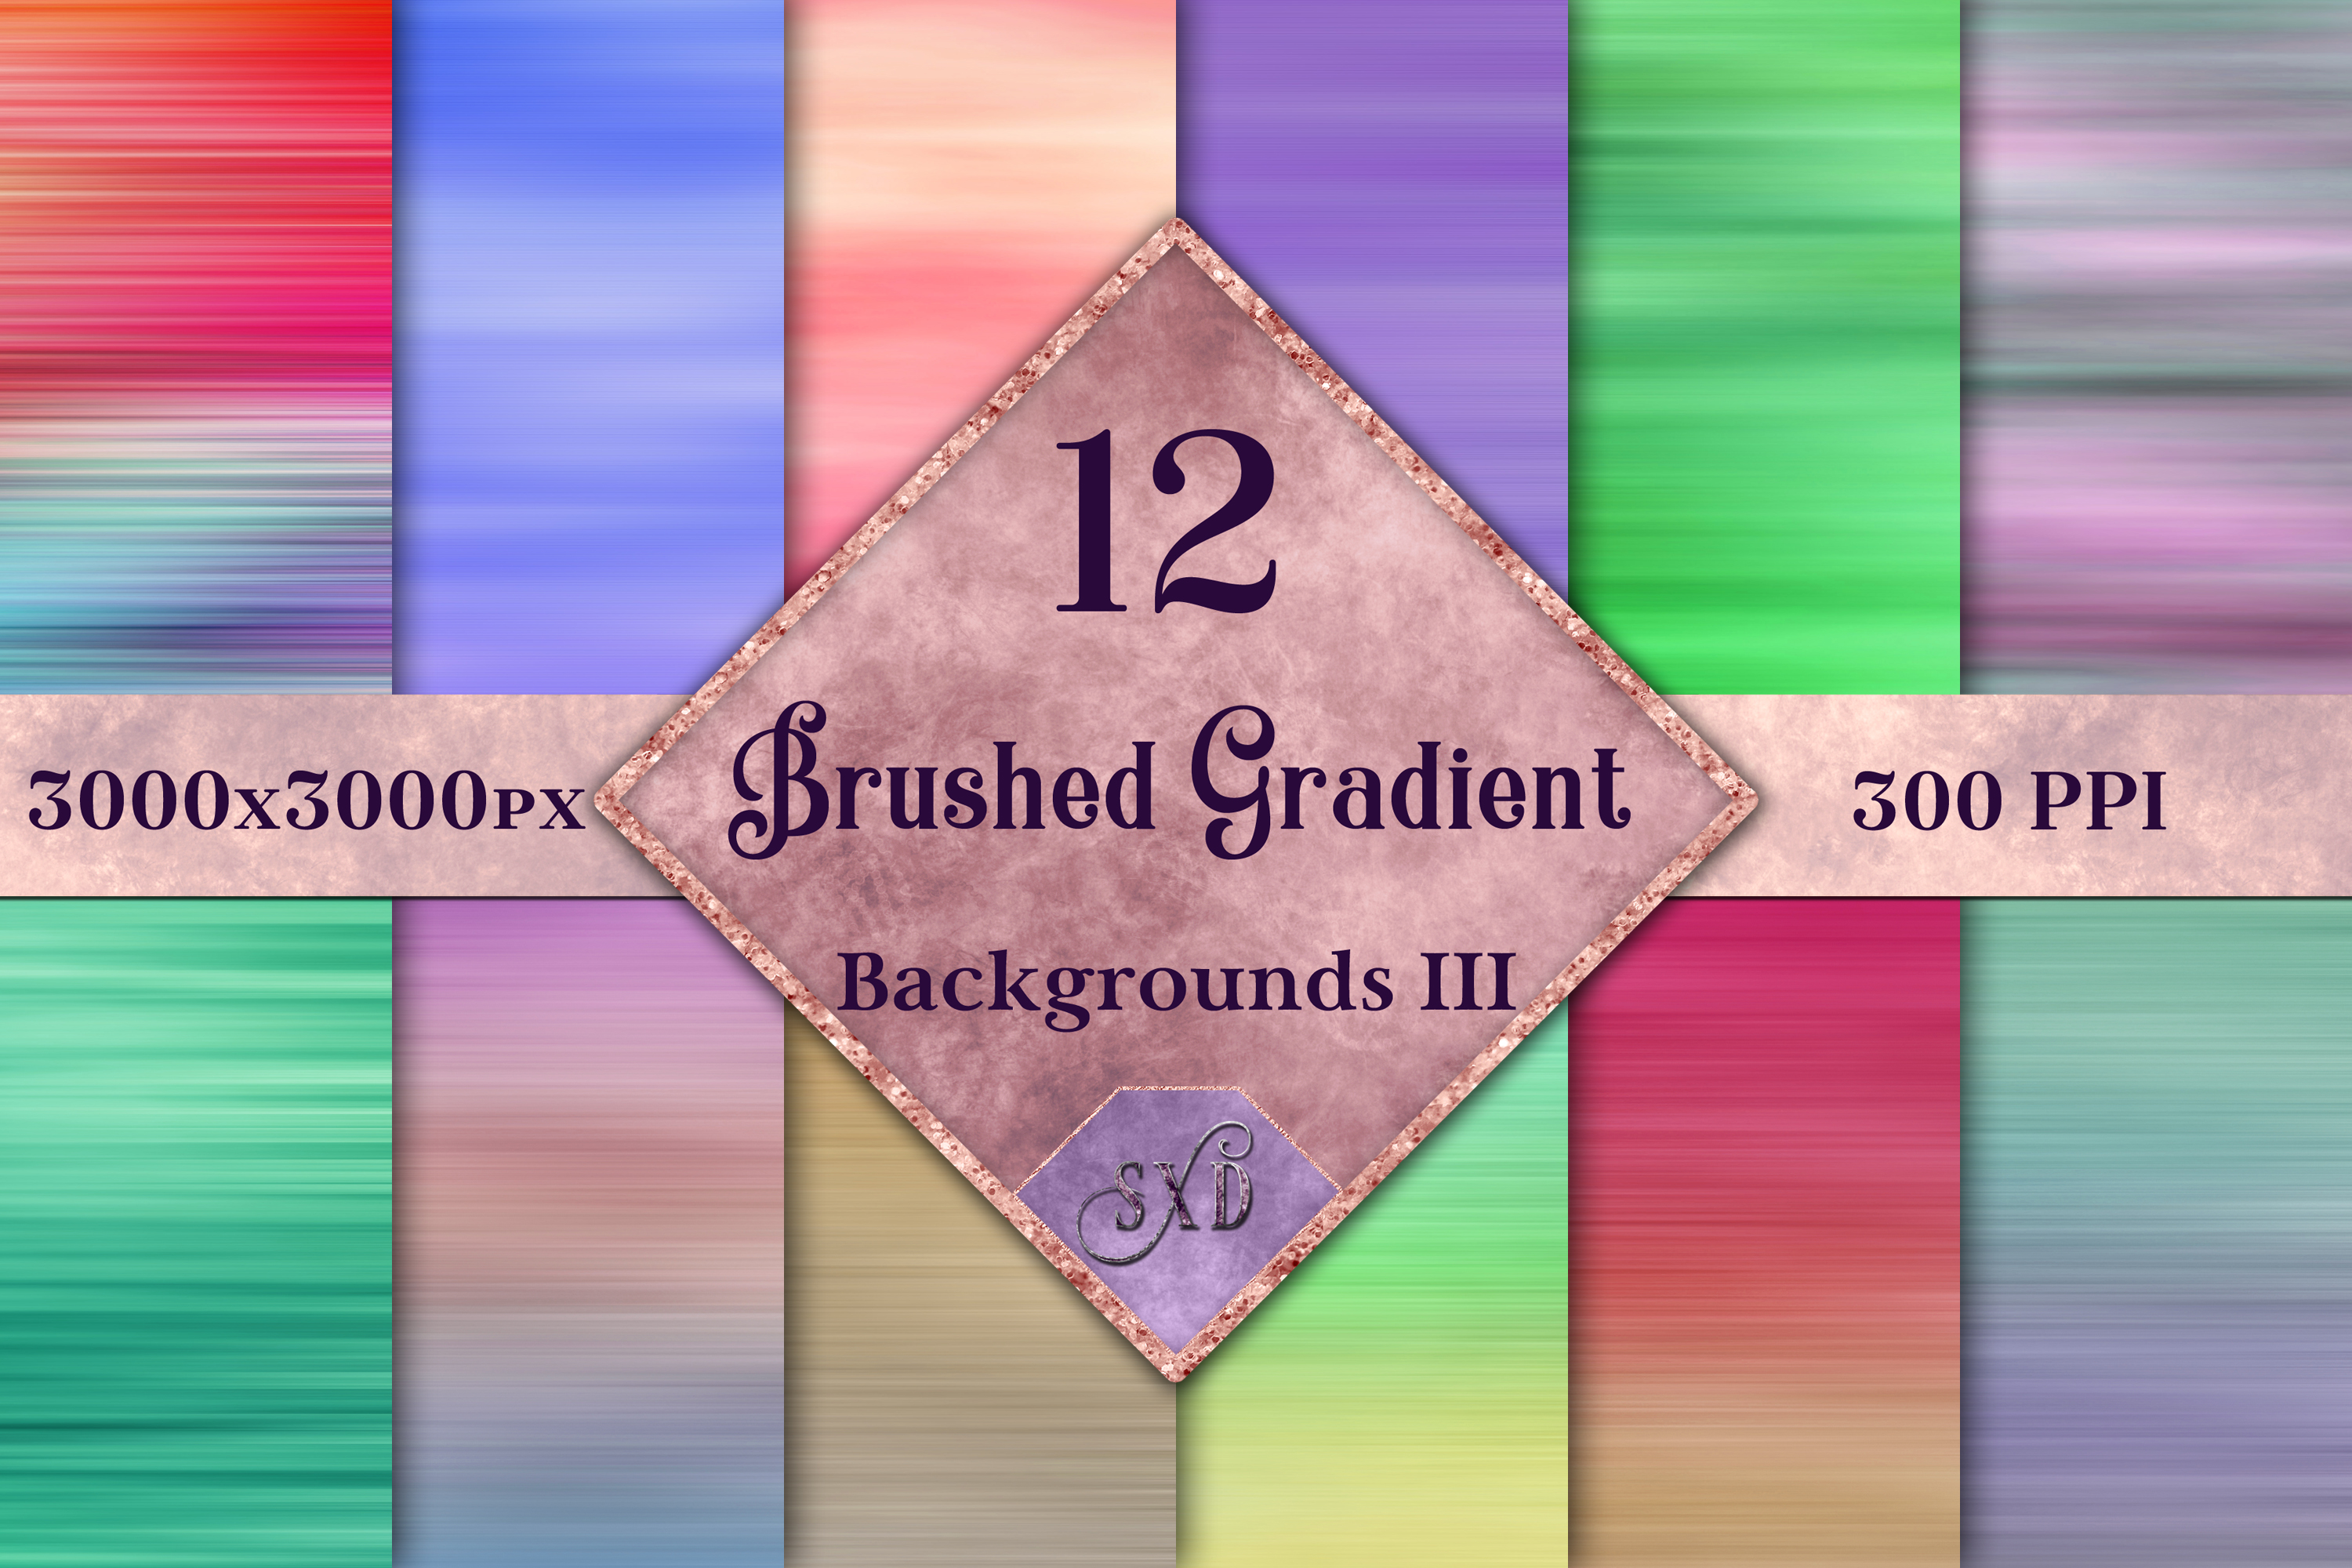 Brushed Gradient Backgrounds III - 12 Image Textures Set example image 1